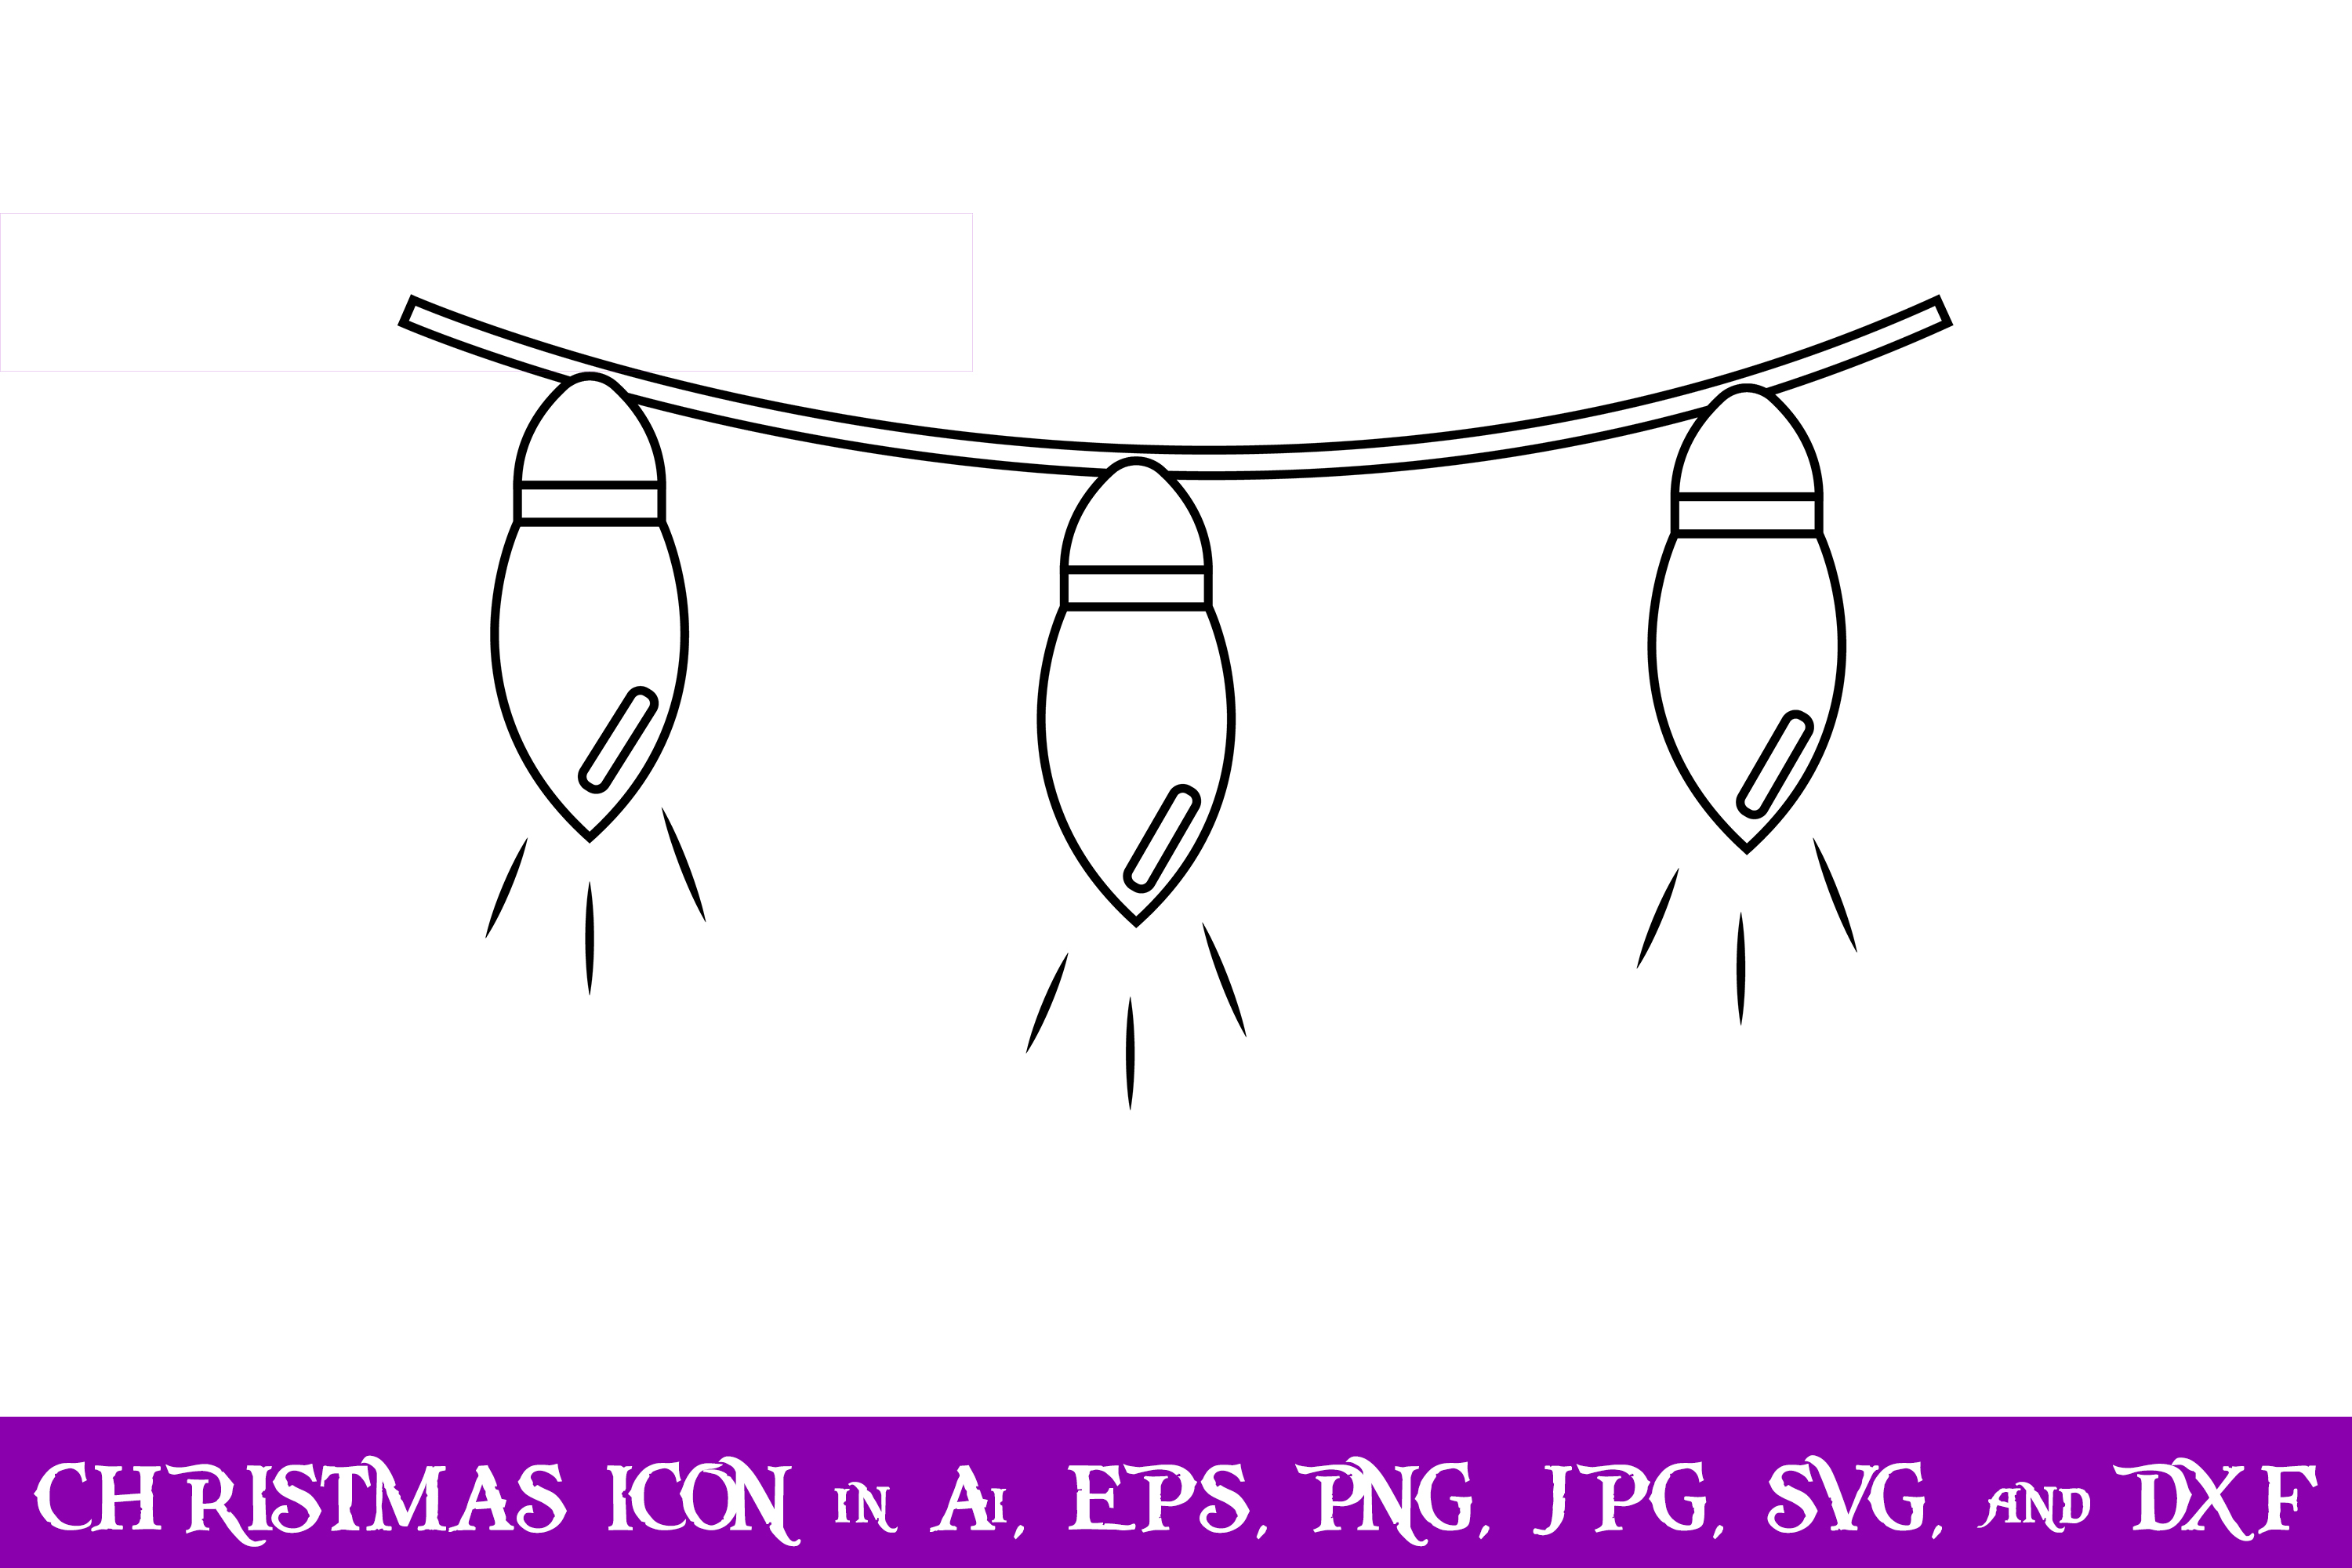 Download Free String Lights Christmas Icon Graphic By Purplespoonpirates for Cricut Explore, Silhouette and other cutting machines.